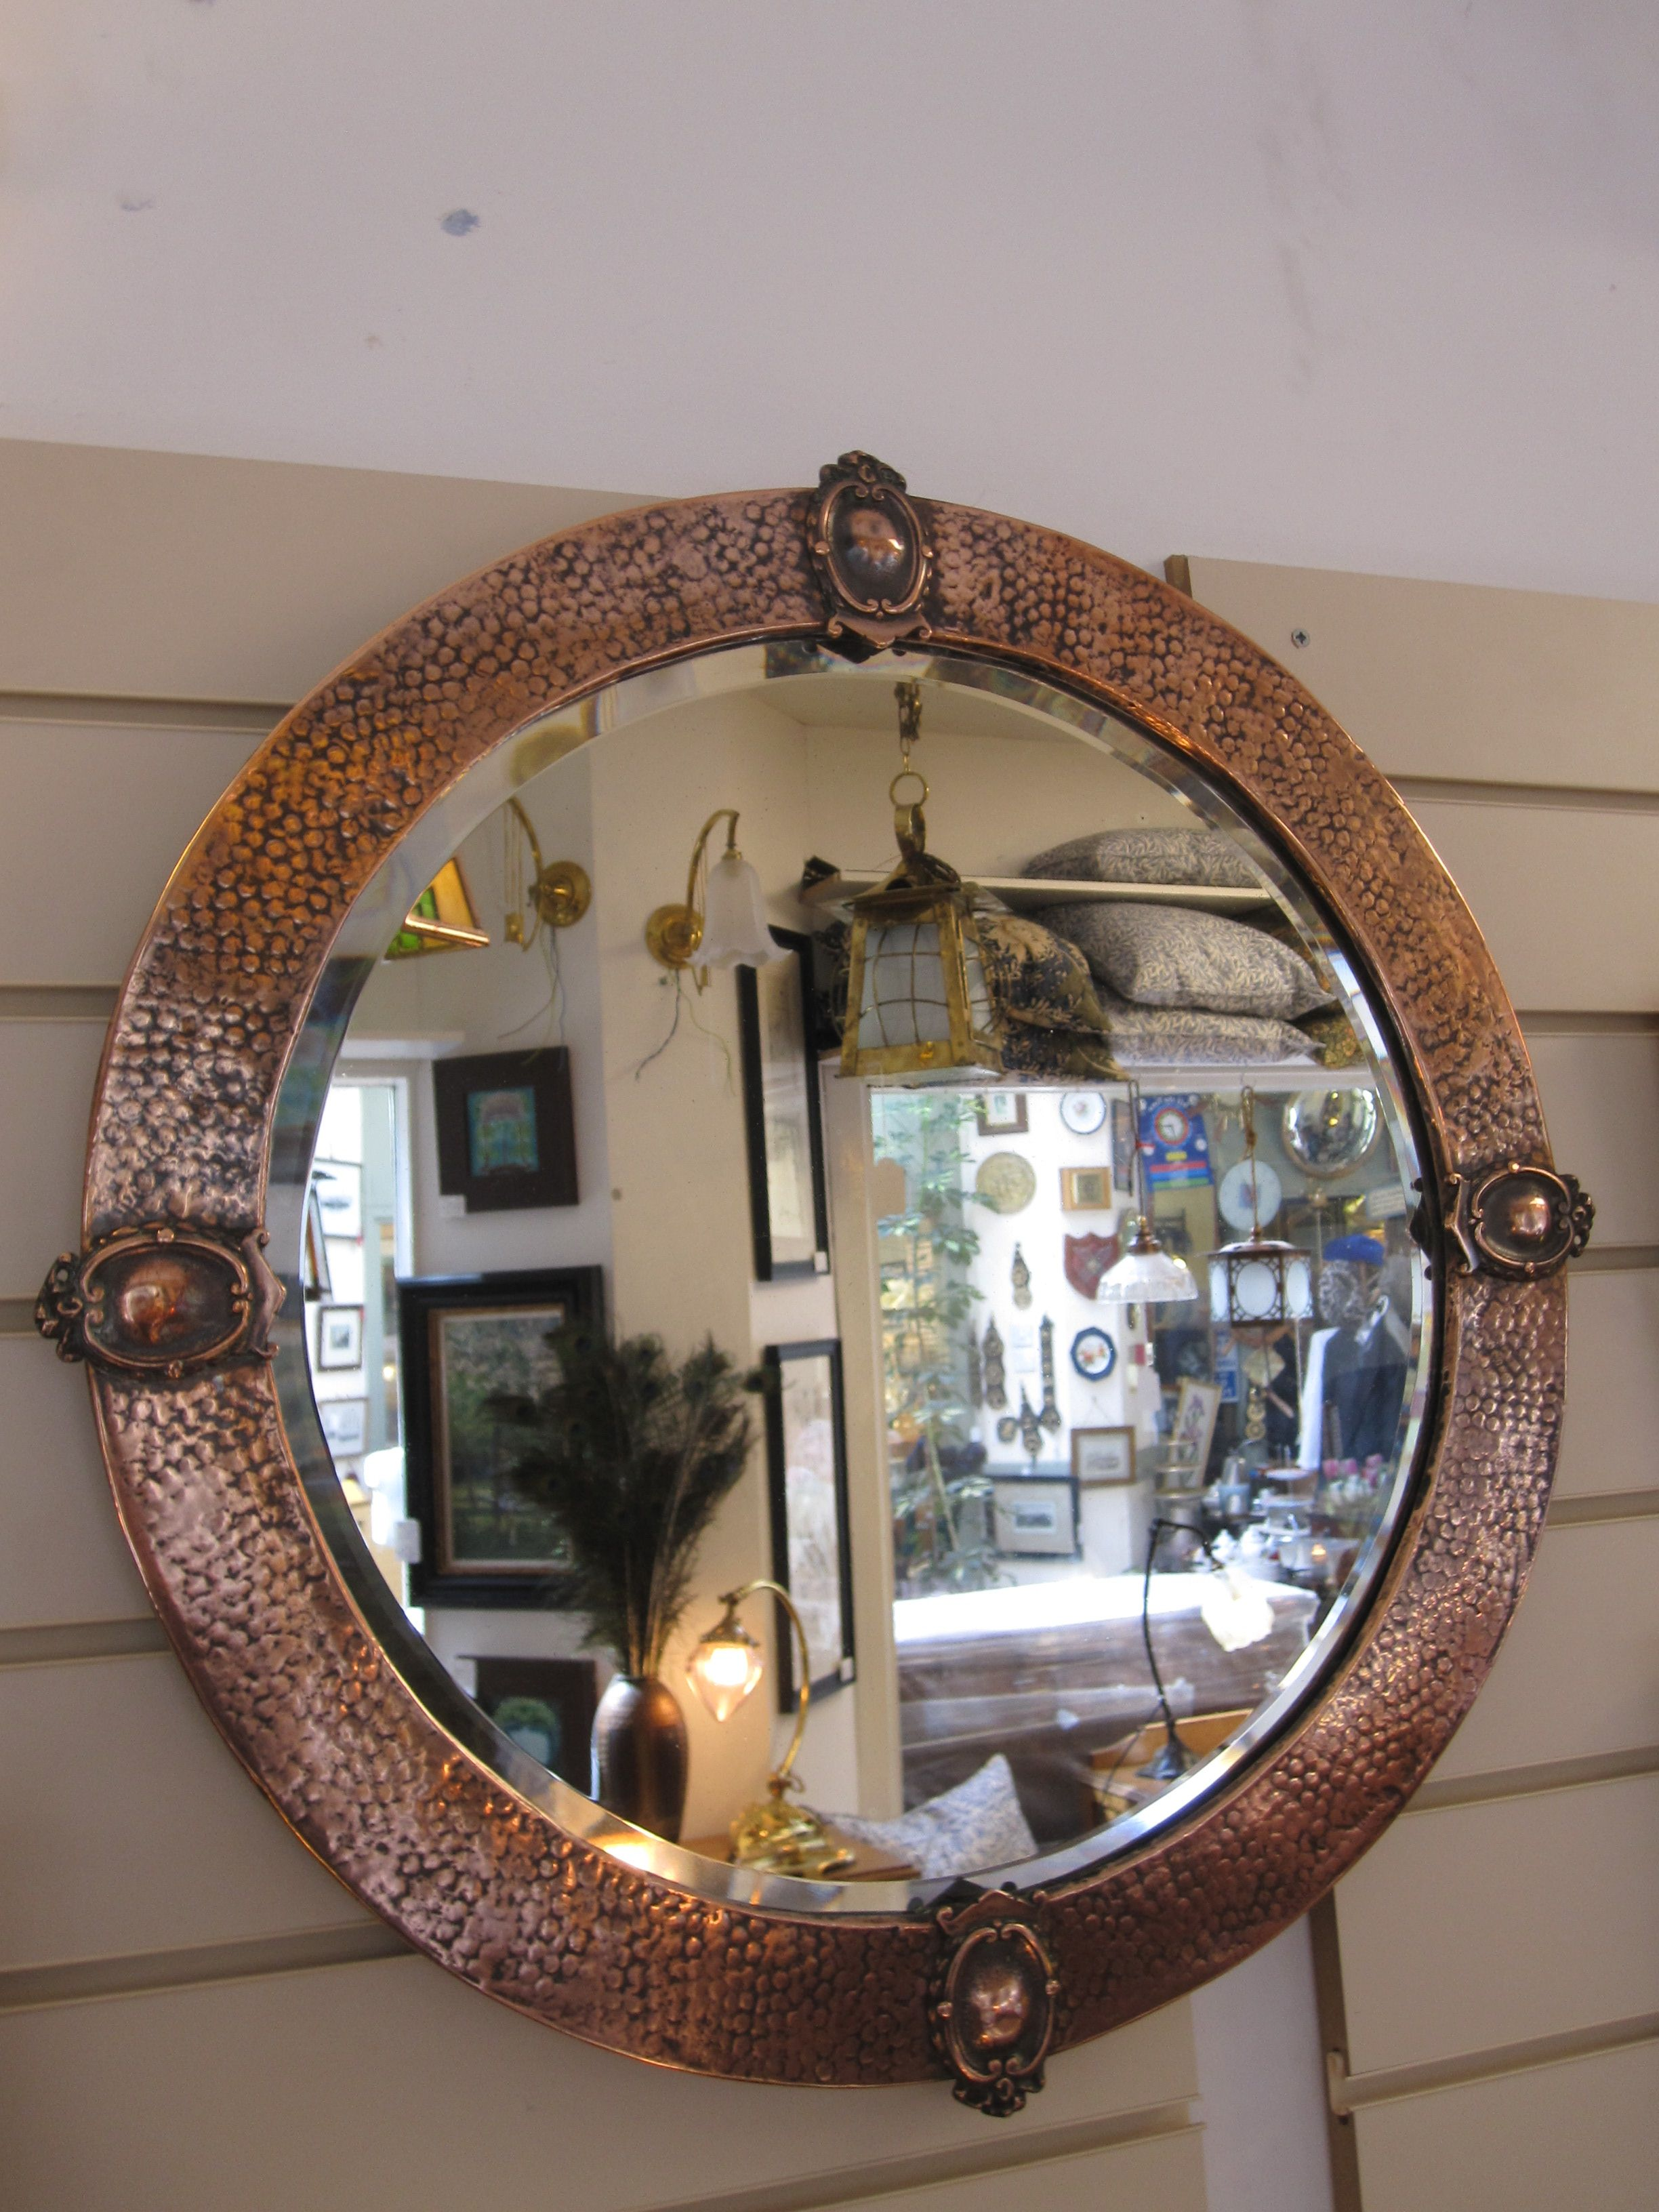 Beaten Copper Framed Mirror With Onlaid Bosses Arts And Crafts Movement Mirror Round Mirrors